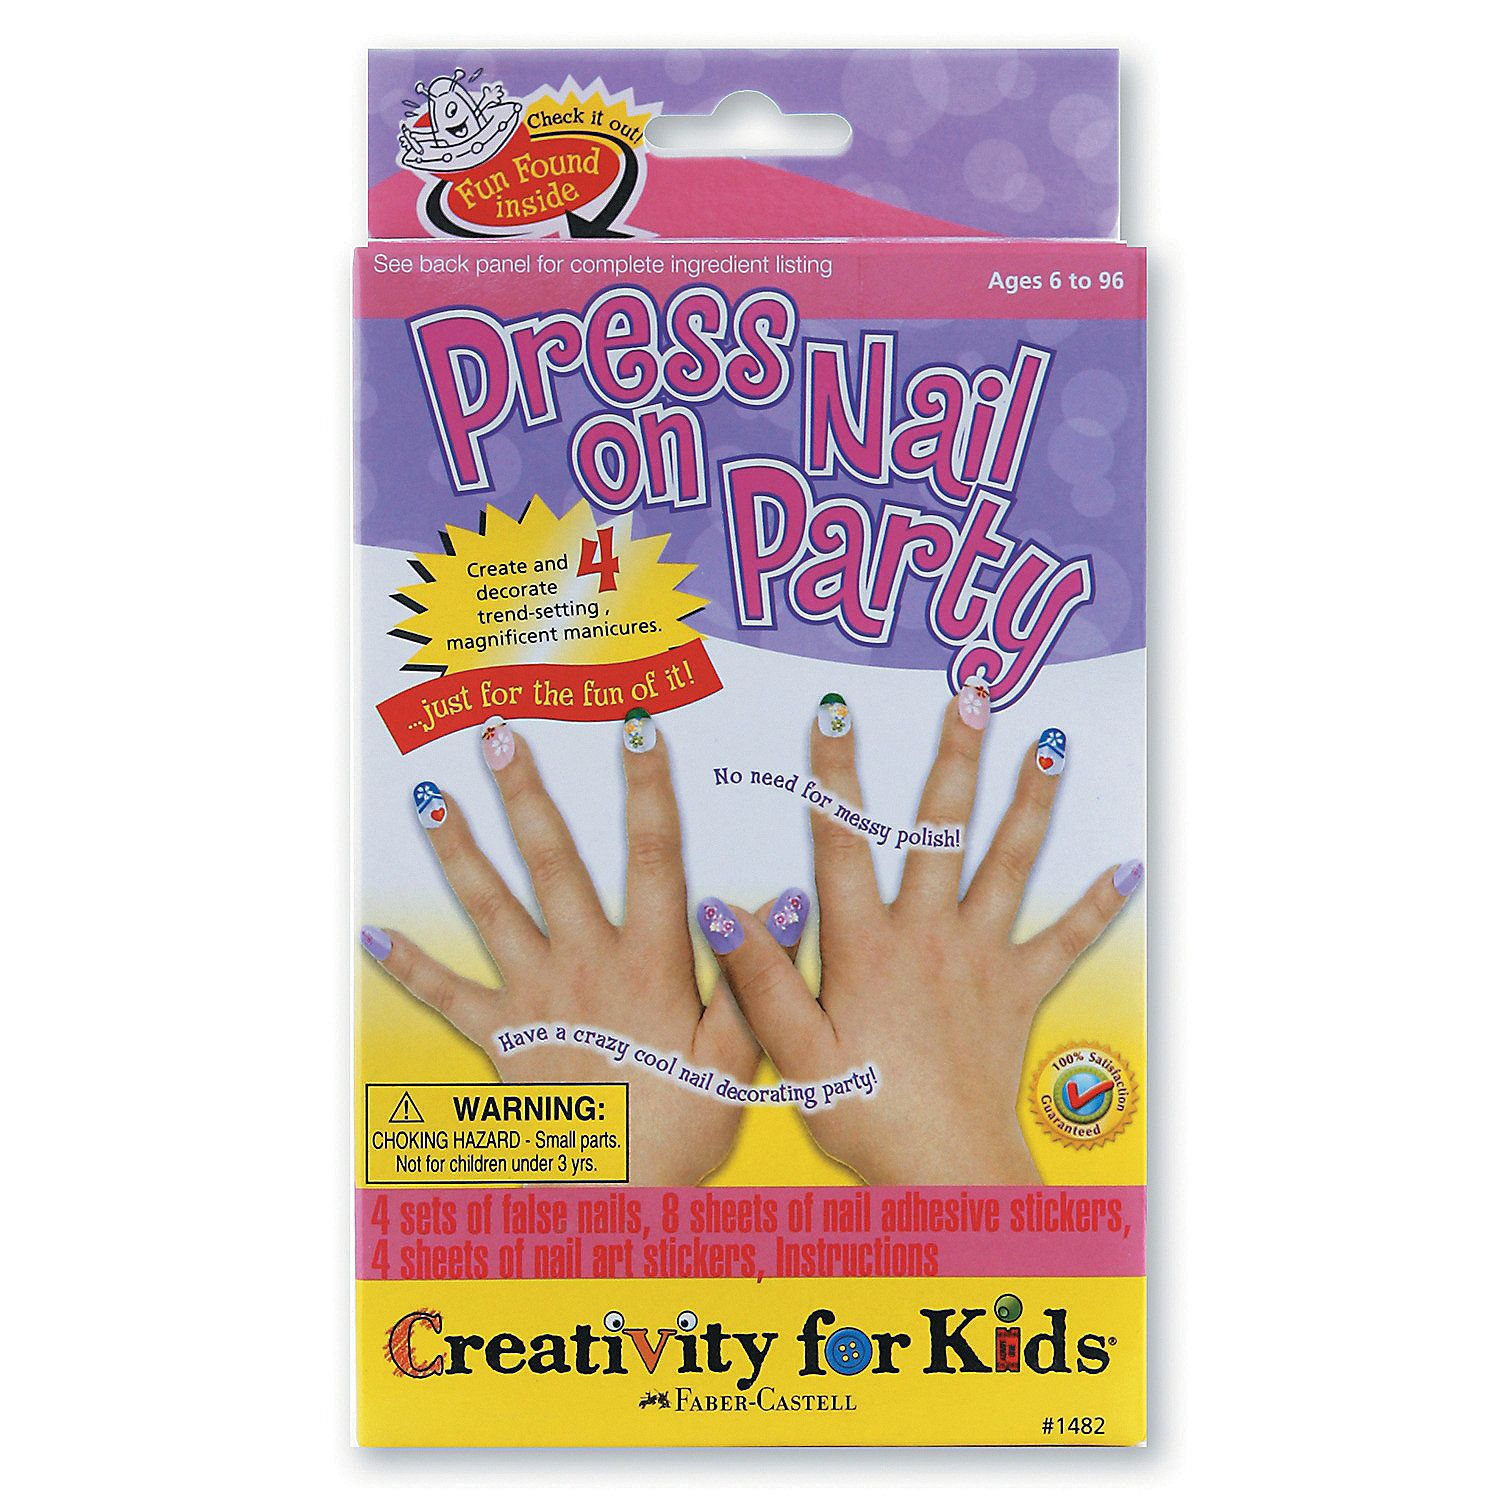 Creativity for kids press on nail party kit with images